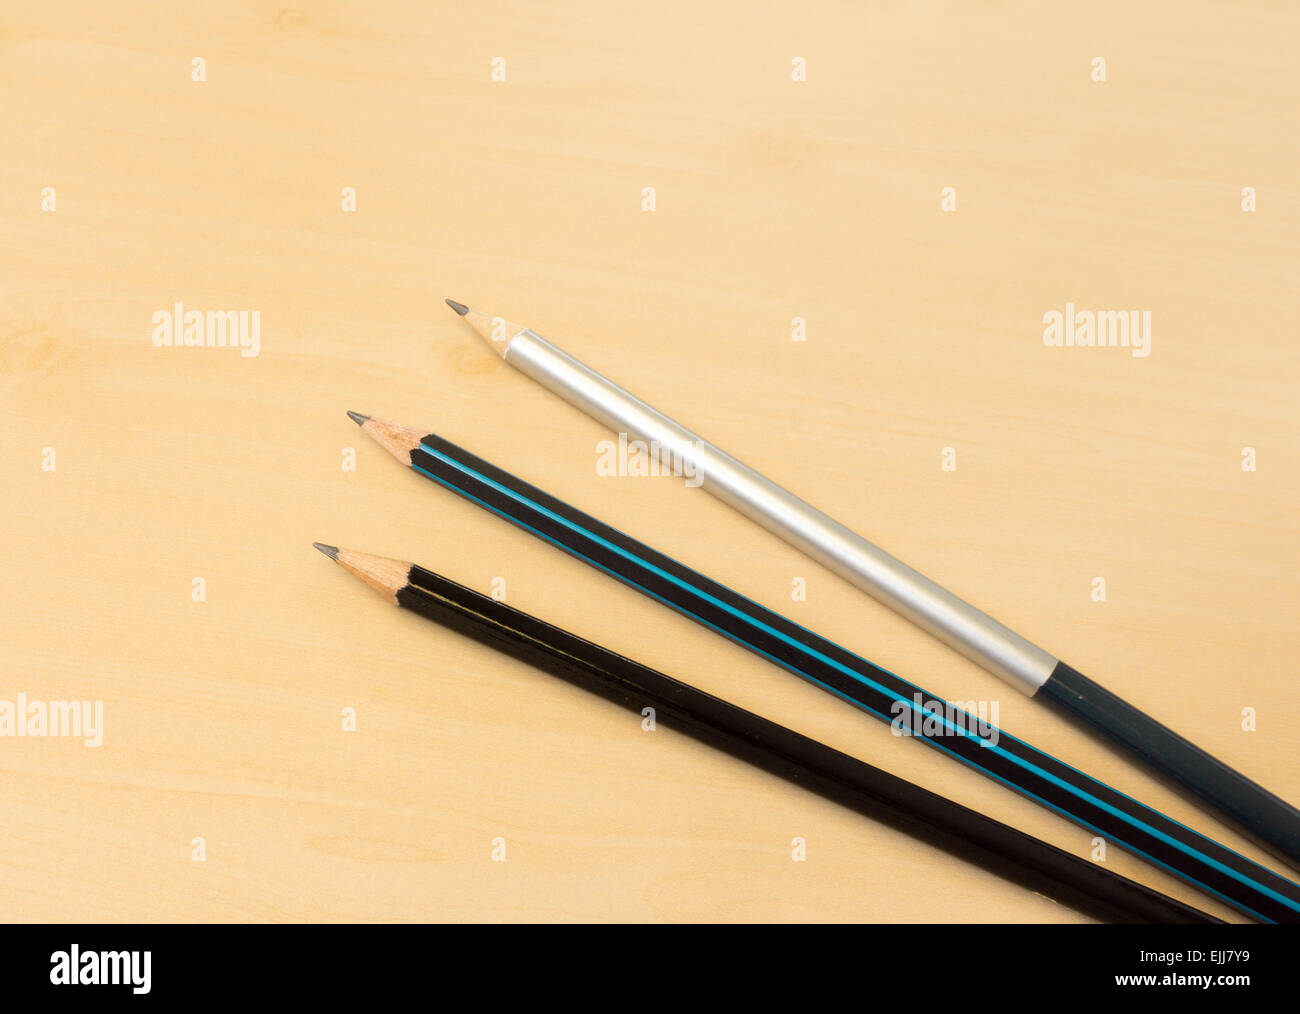 Three Color Sharp Pencils Placed on Light Brown Wooden Table Texture - Stock Image